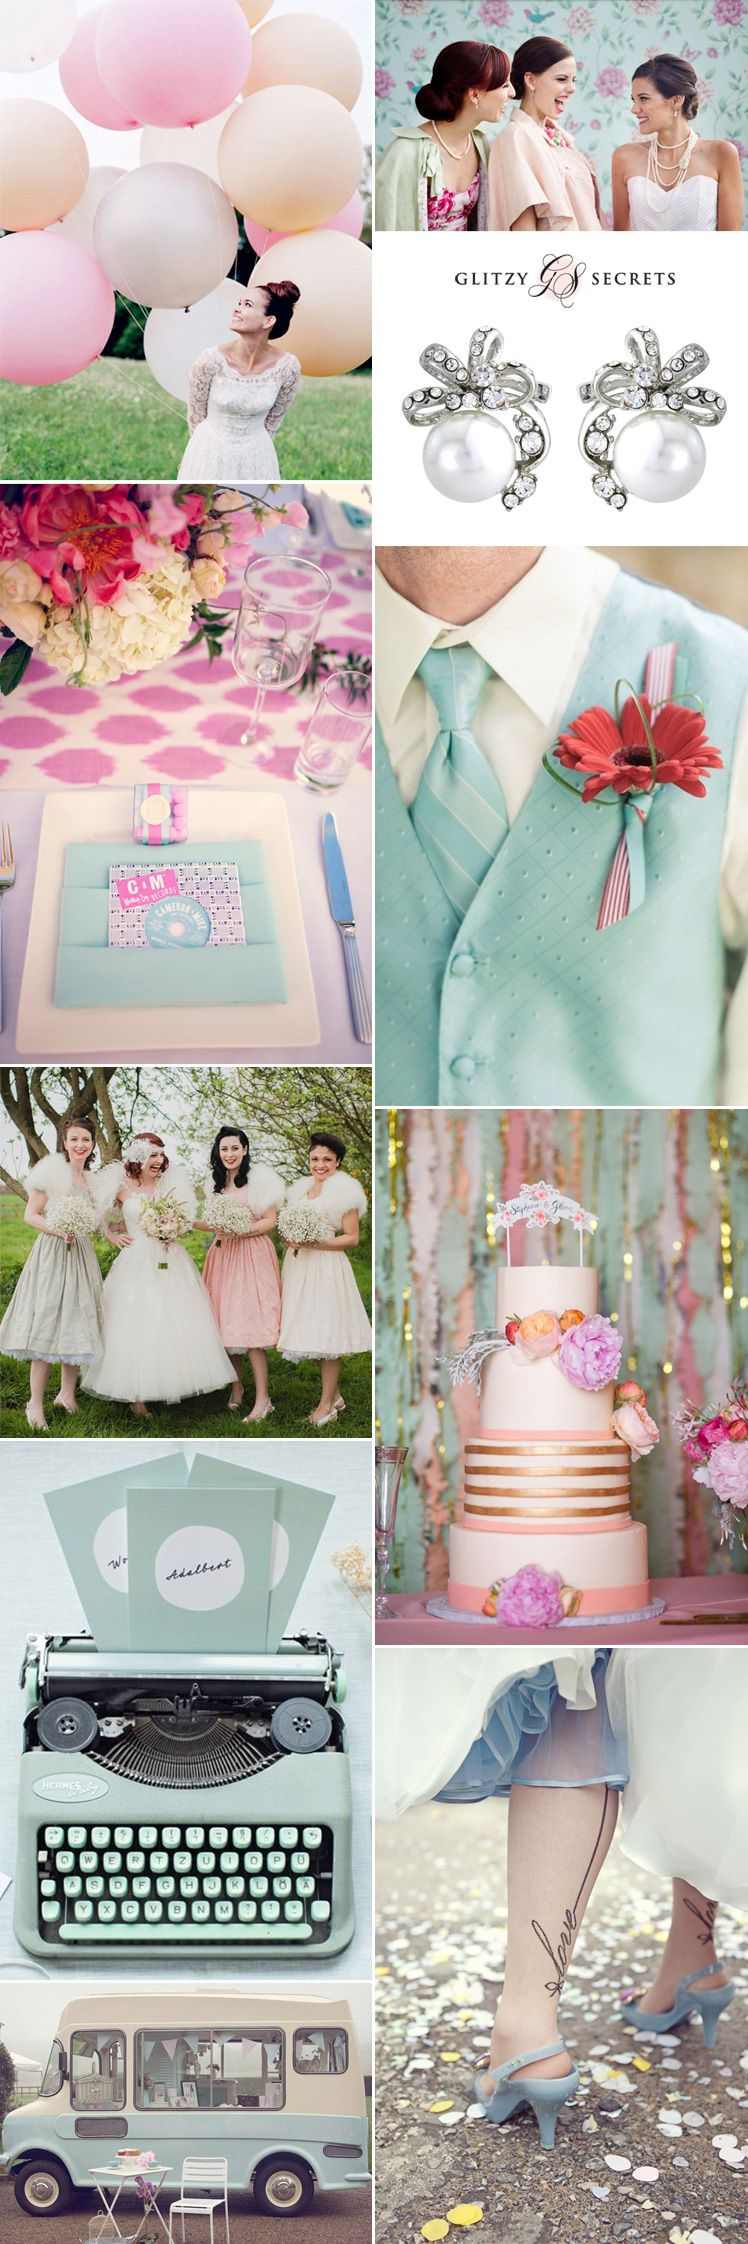 Pastels And Petticoats 1950s Wedding Ideas Wedding Colors